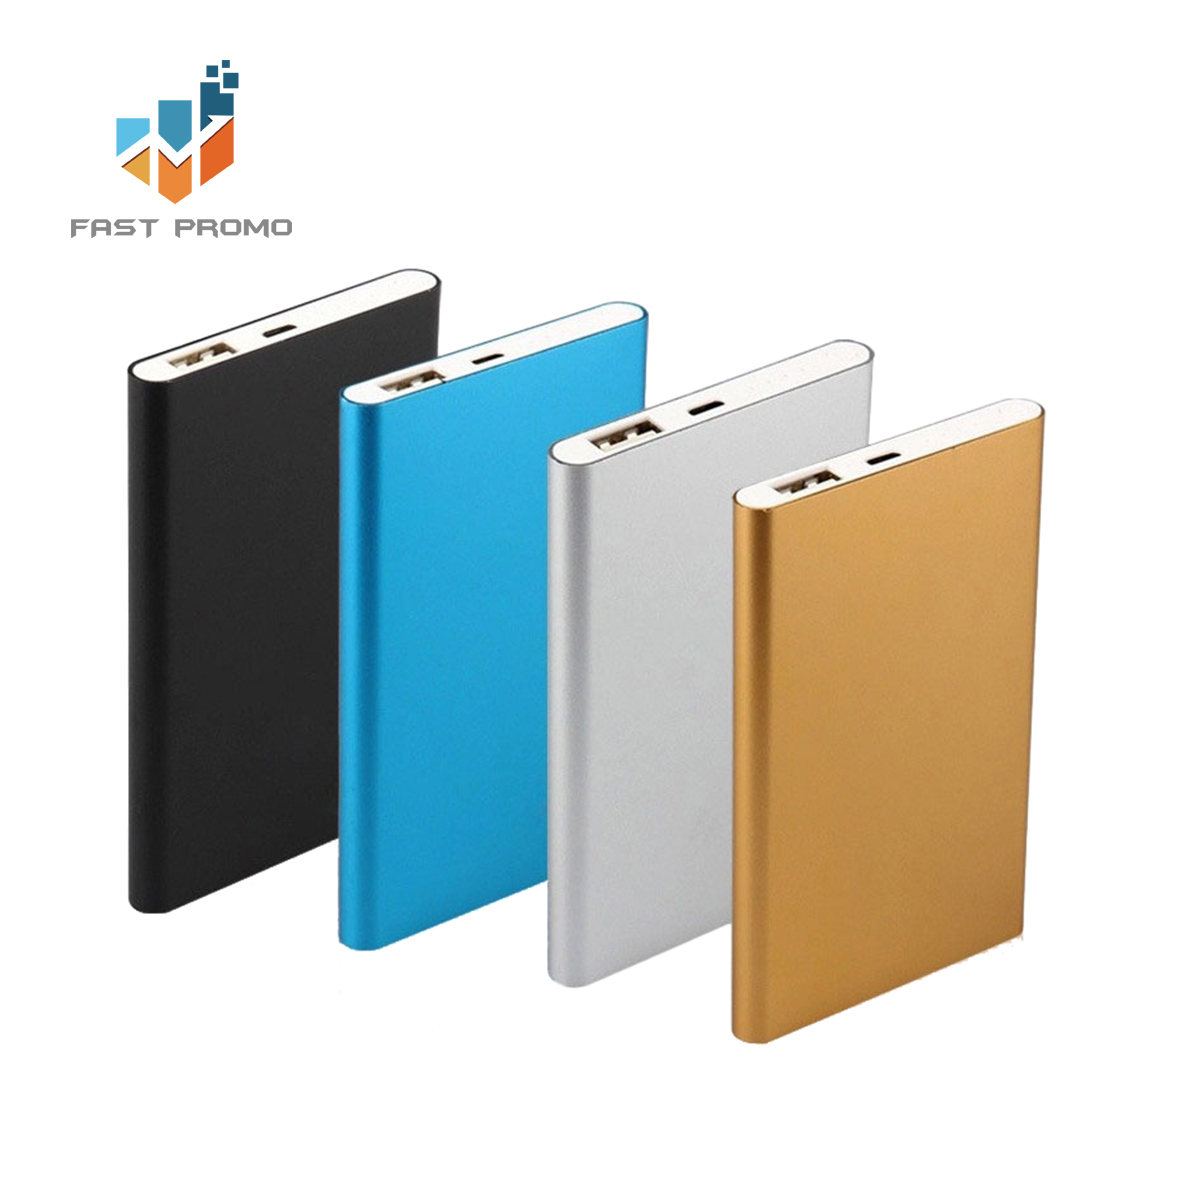 Grosir Promosi Ultrathin Tinggi Kapasitas Portable Square Ponsel Charger Power Bank